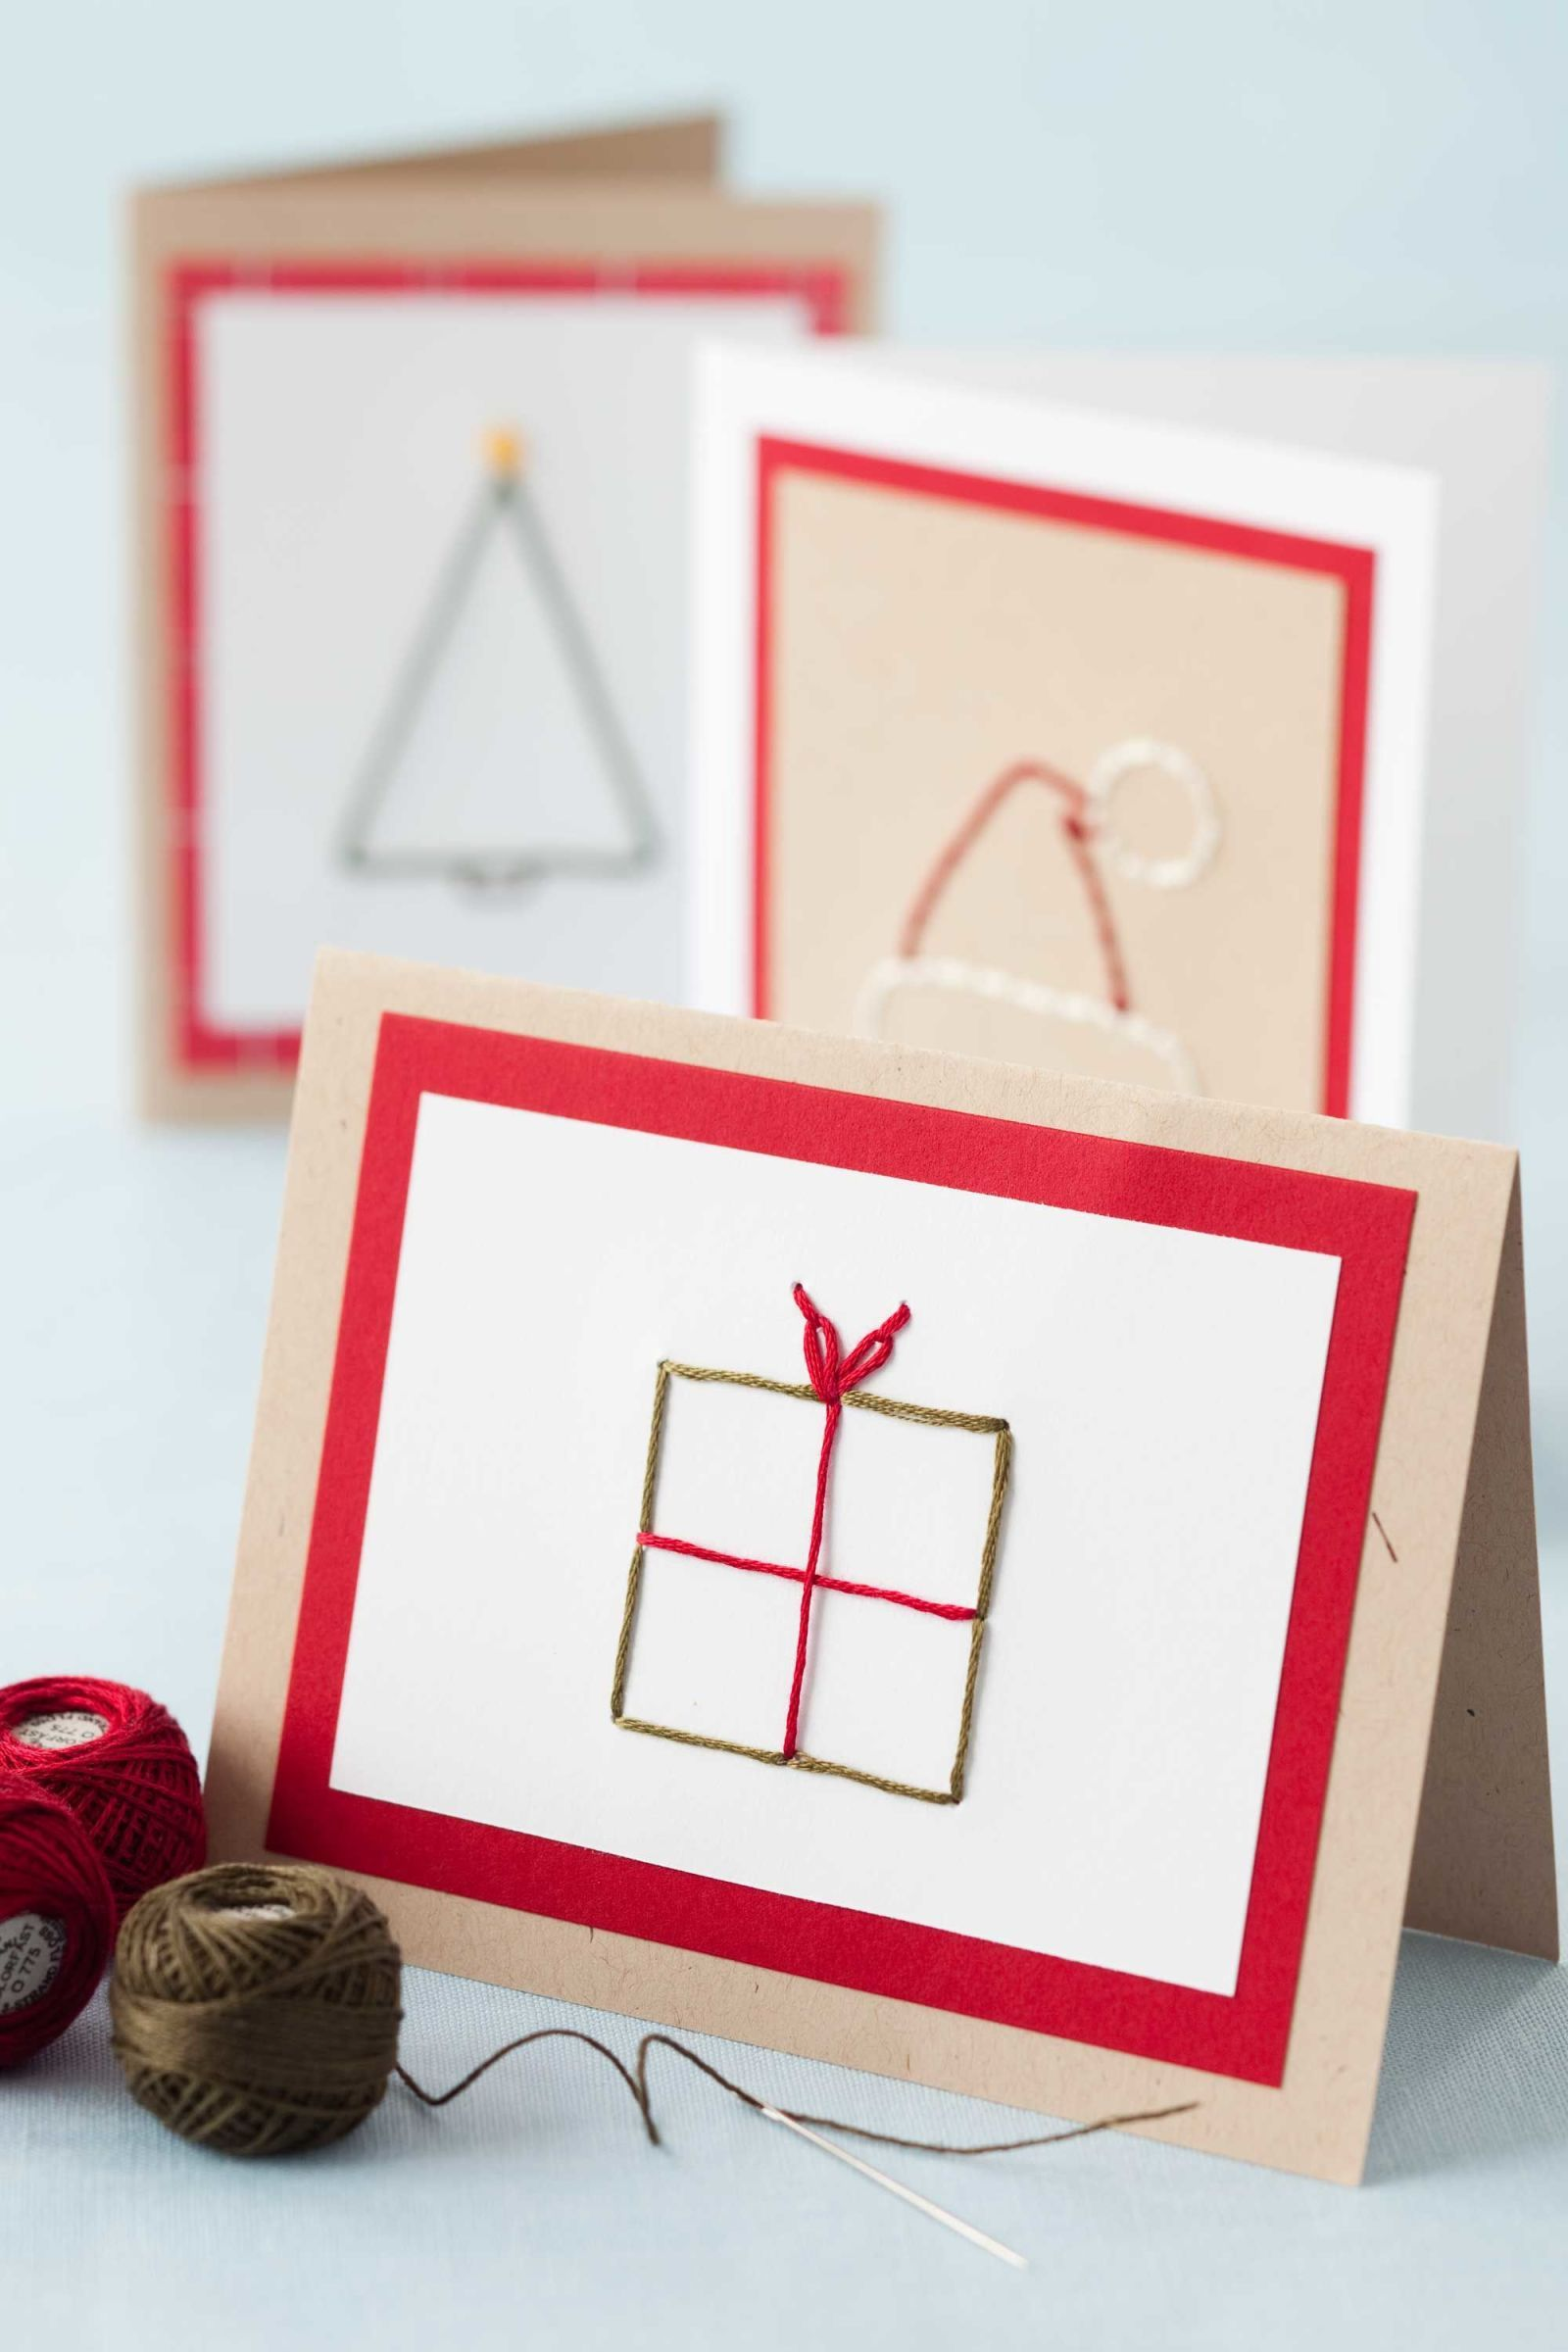 60 Adorable Christmas Crafts To Make On A Snowy Day Geschenke